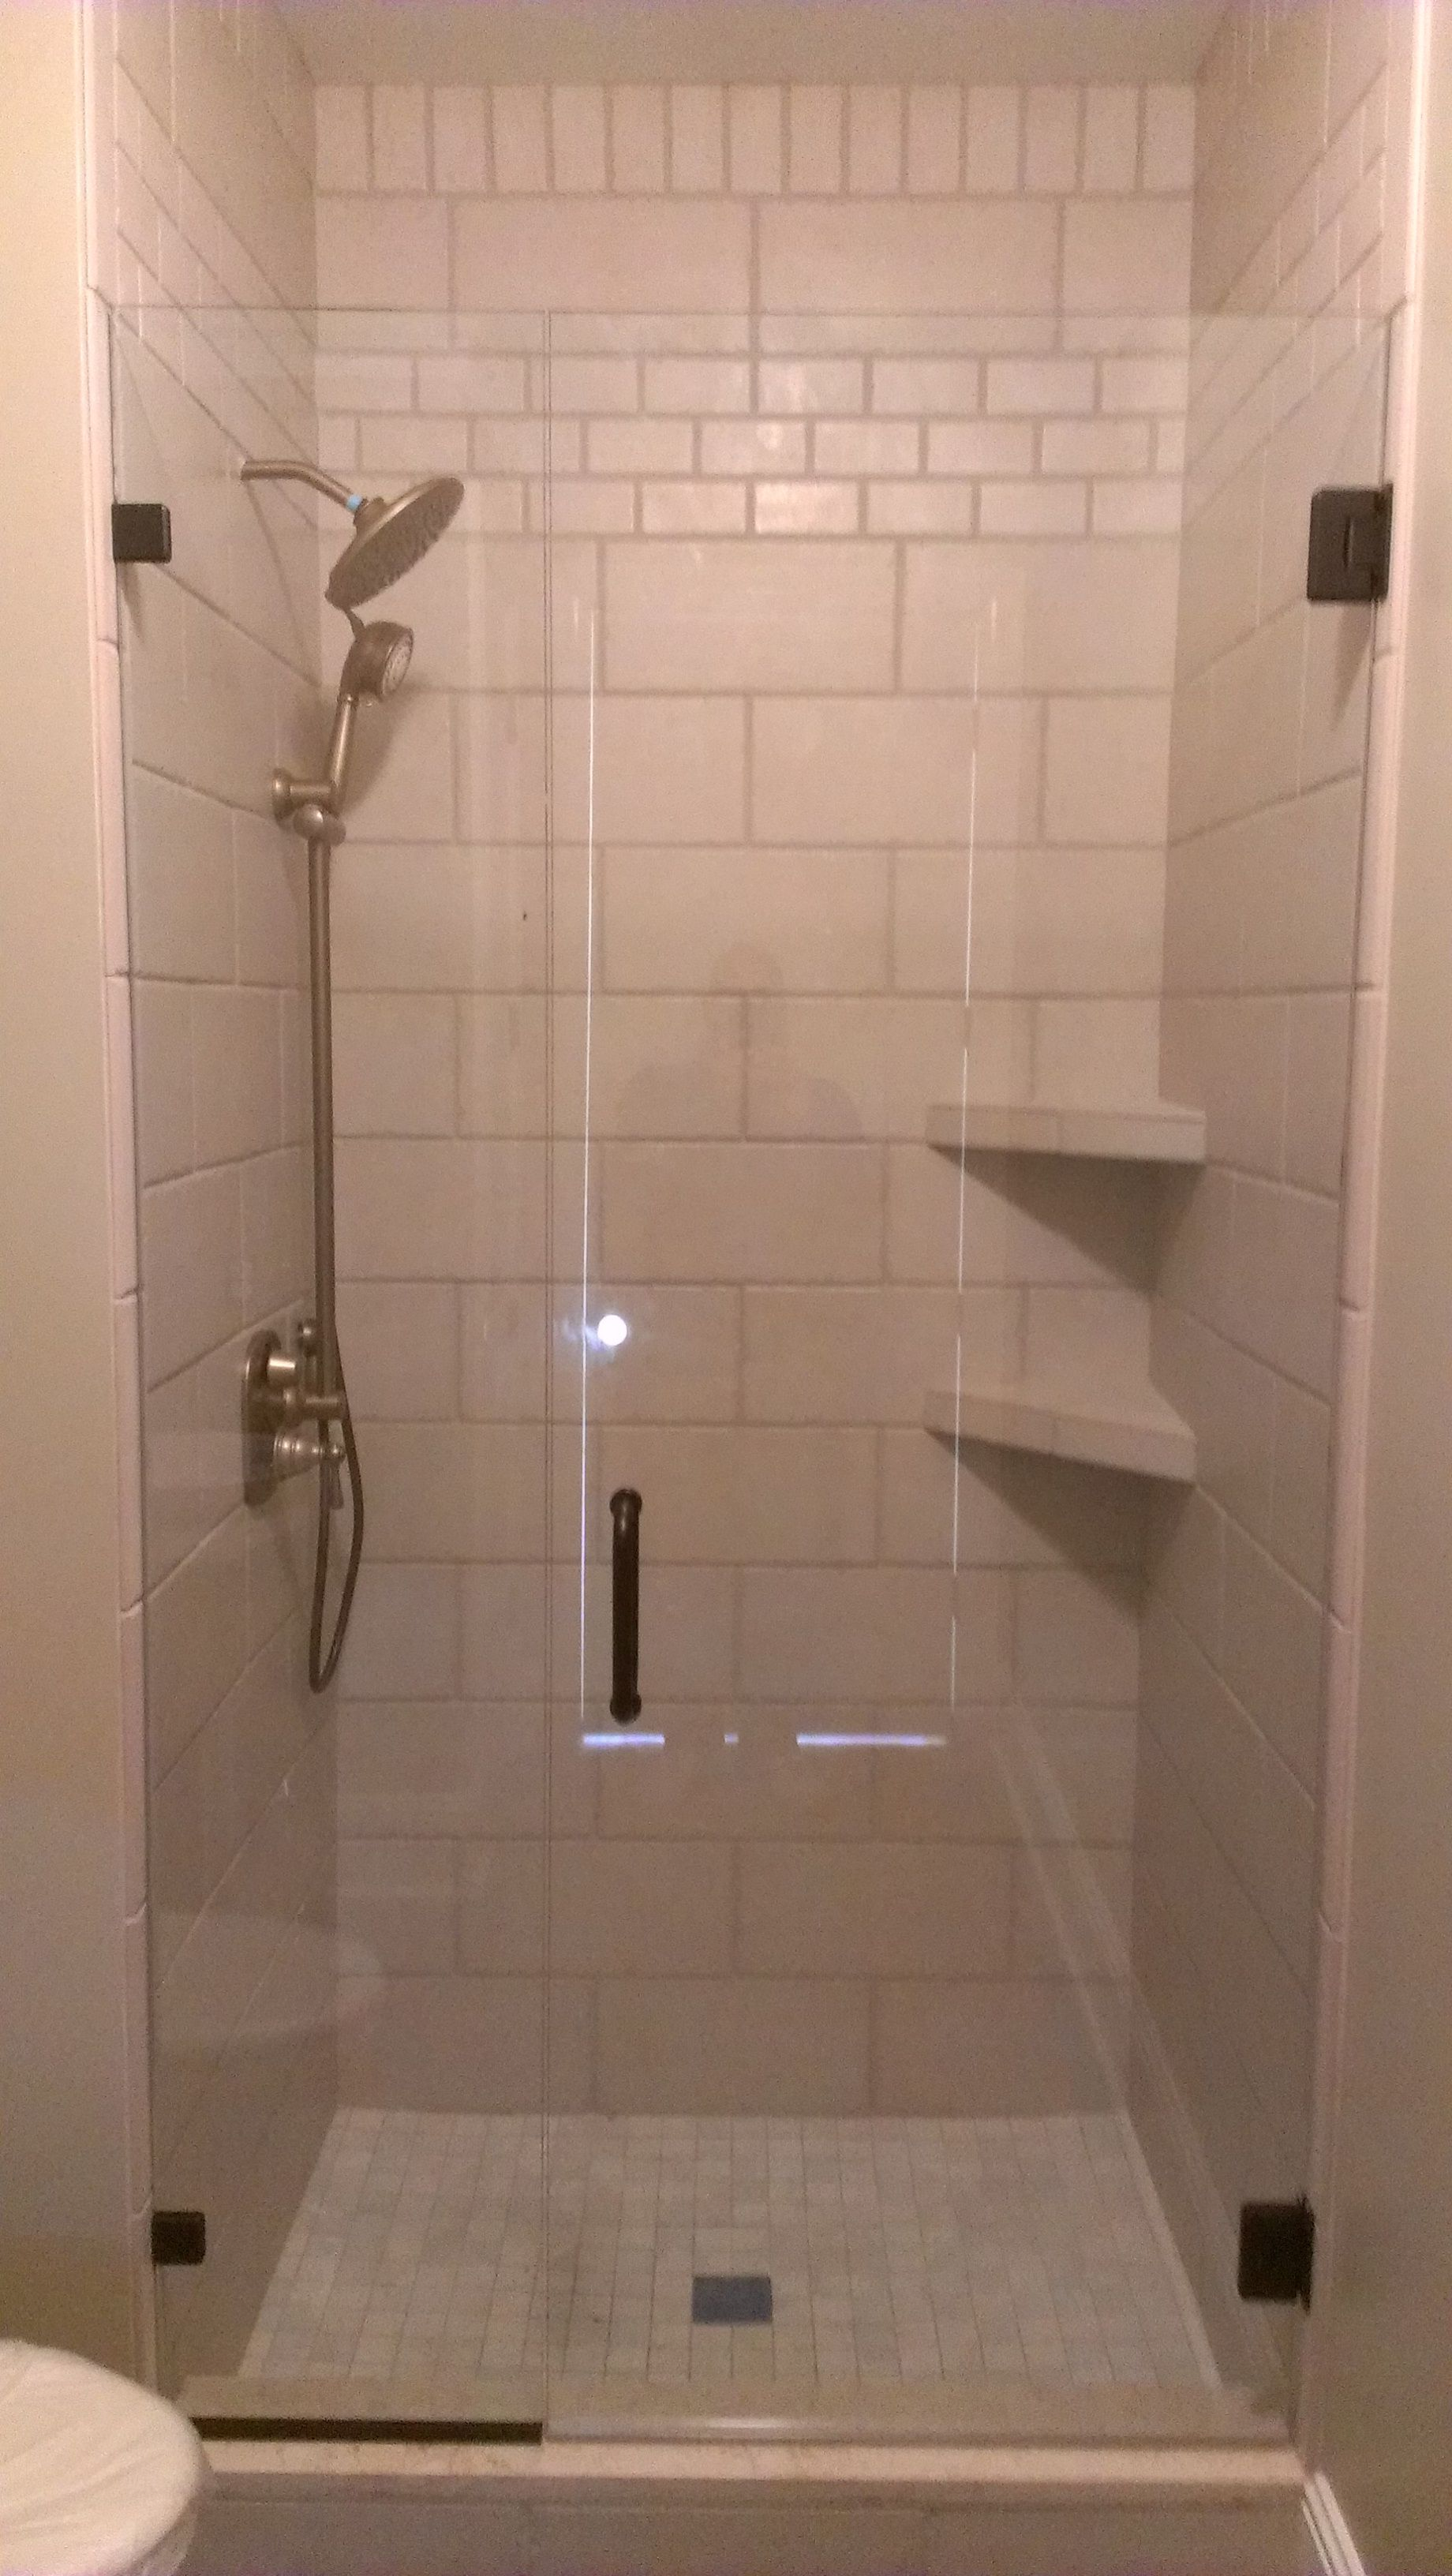 Tile Shower Tile Shower With Corner Shelves And Inlays #18 Tiled ...